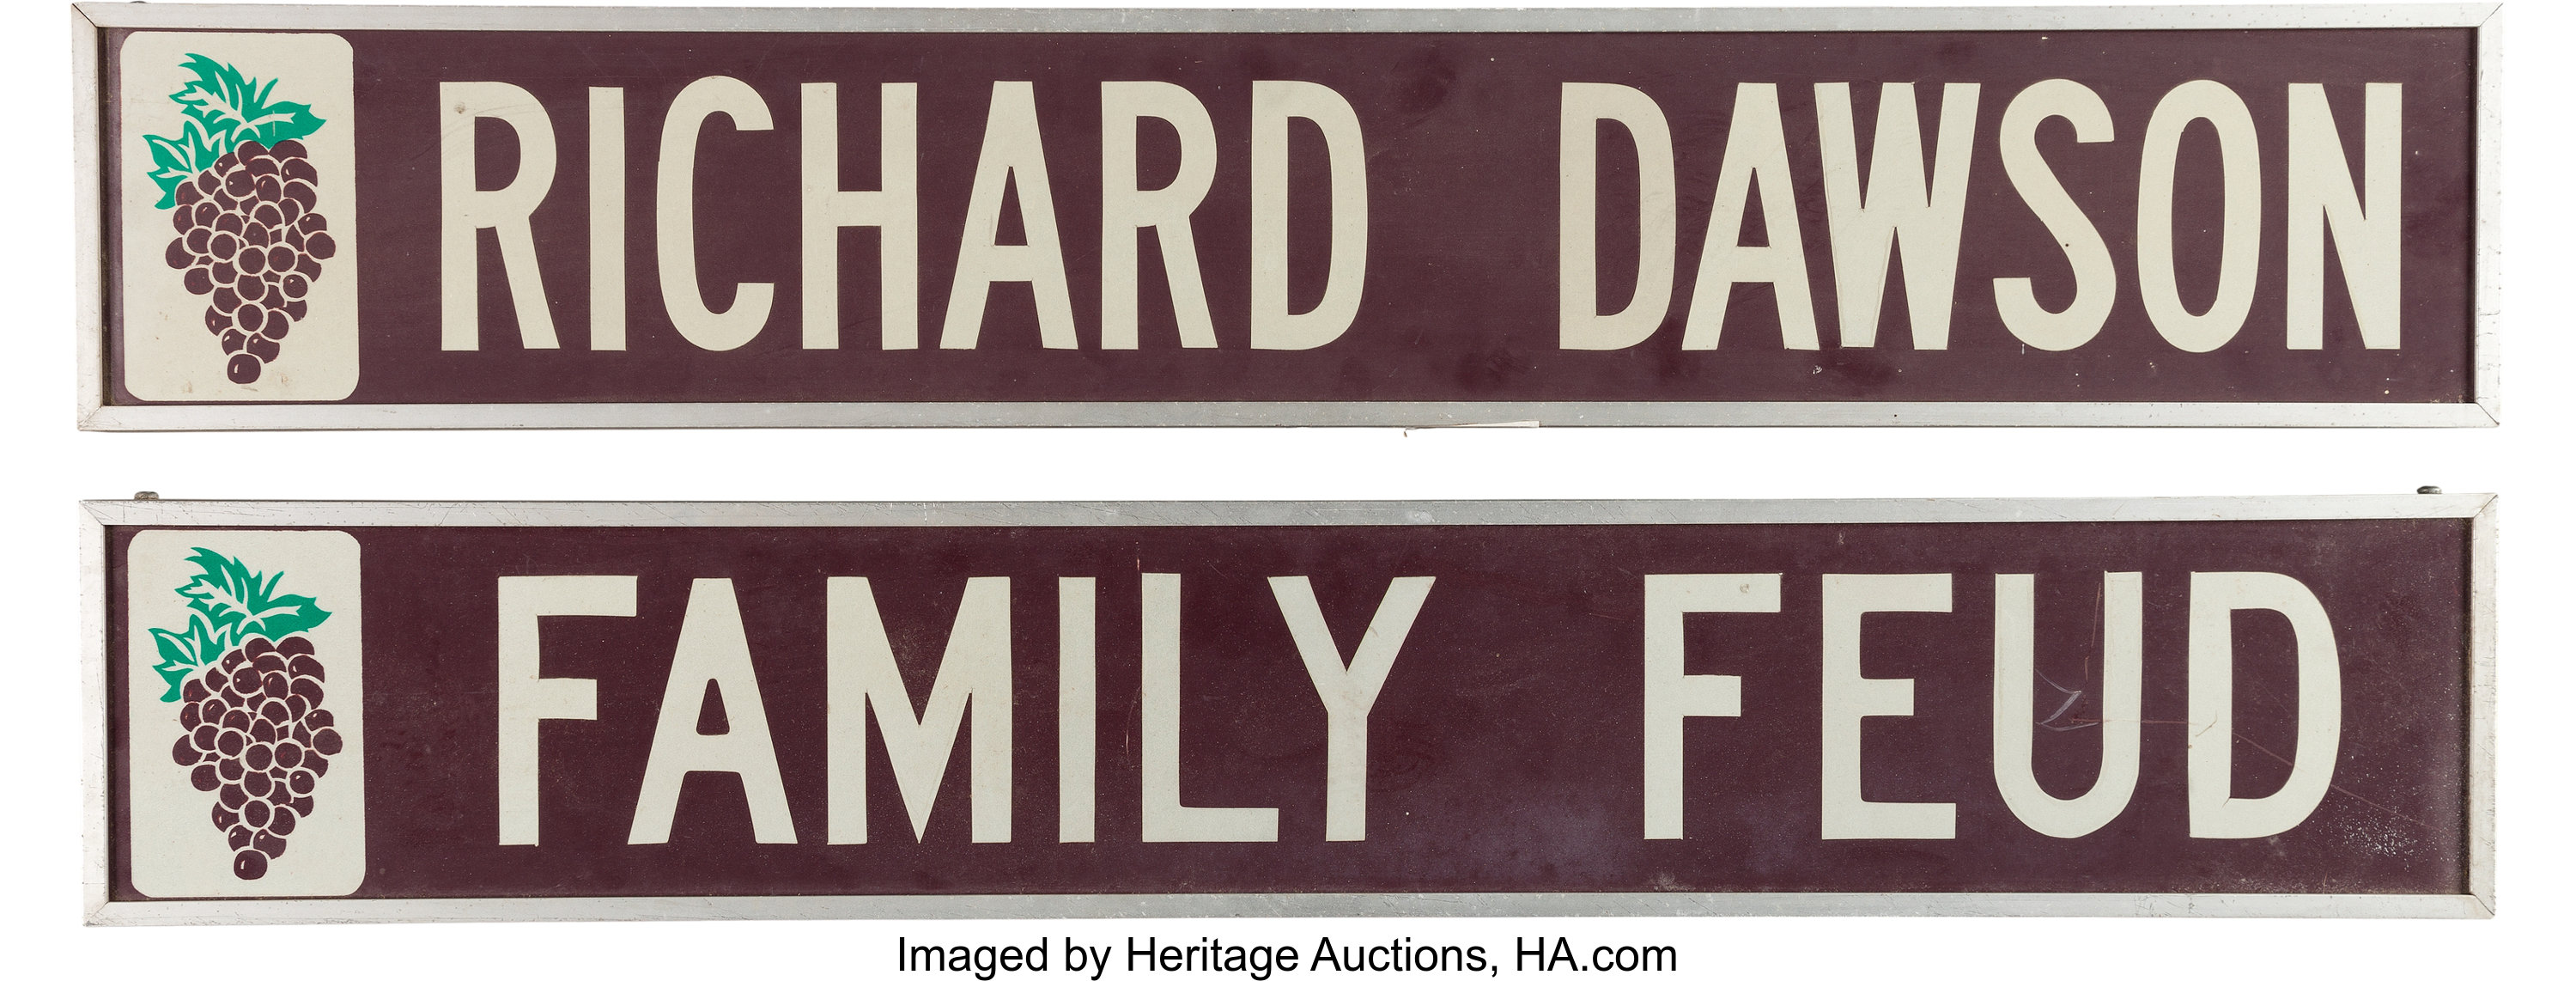 A Richard Dawson Set of Long Signs Related to